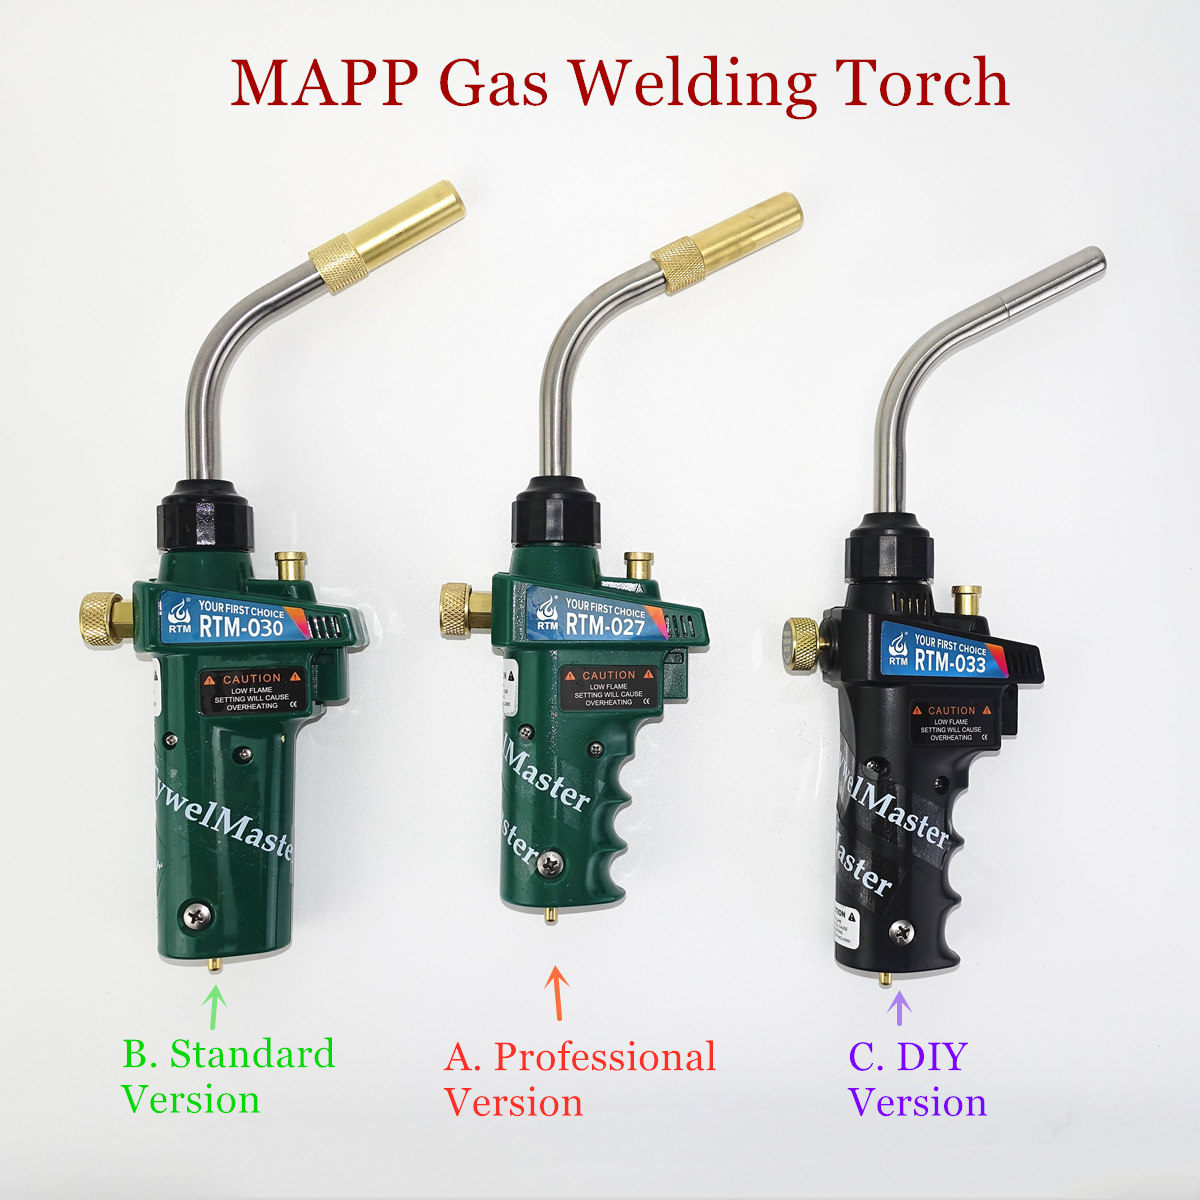 Braze Welding Torch MAPP Propane Gas Torch Piezo Trigger Ignition CGA600 Copper Aluminum Heating Solder Burner